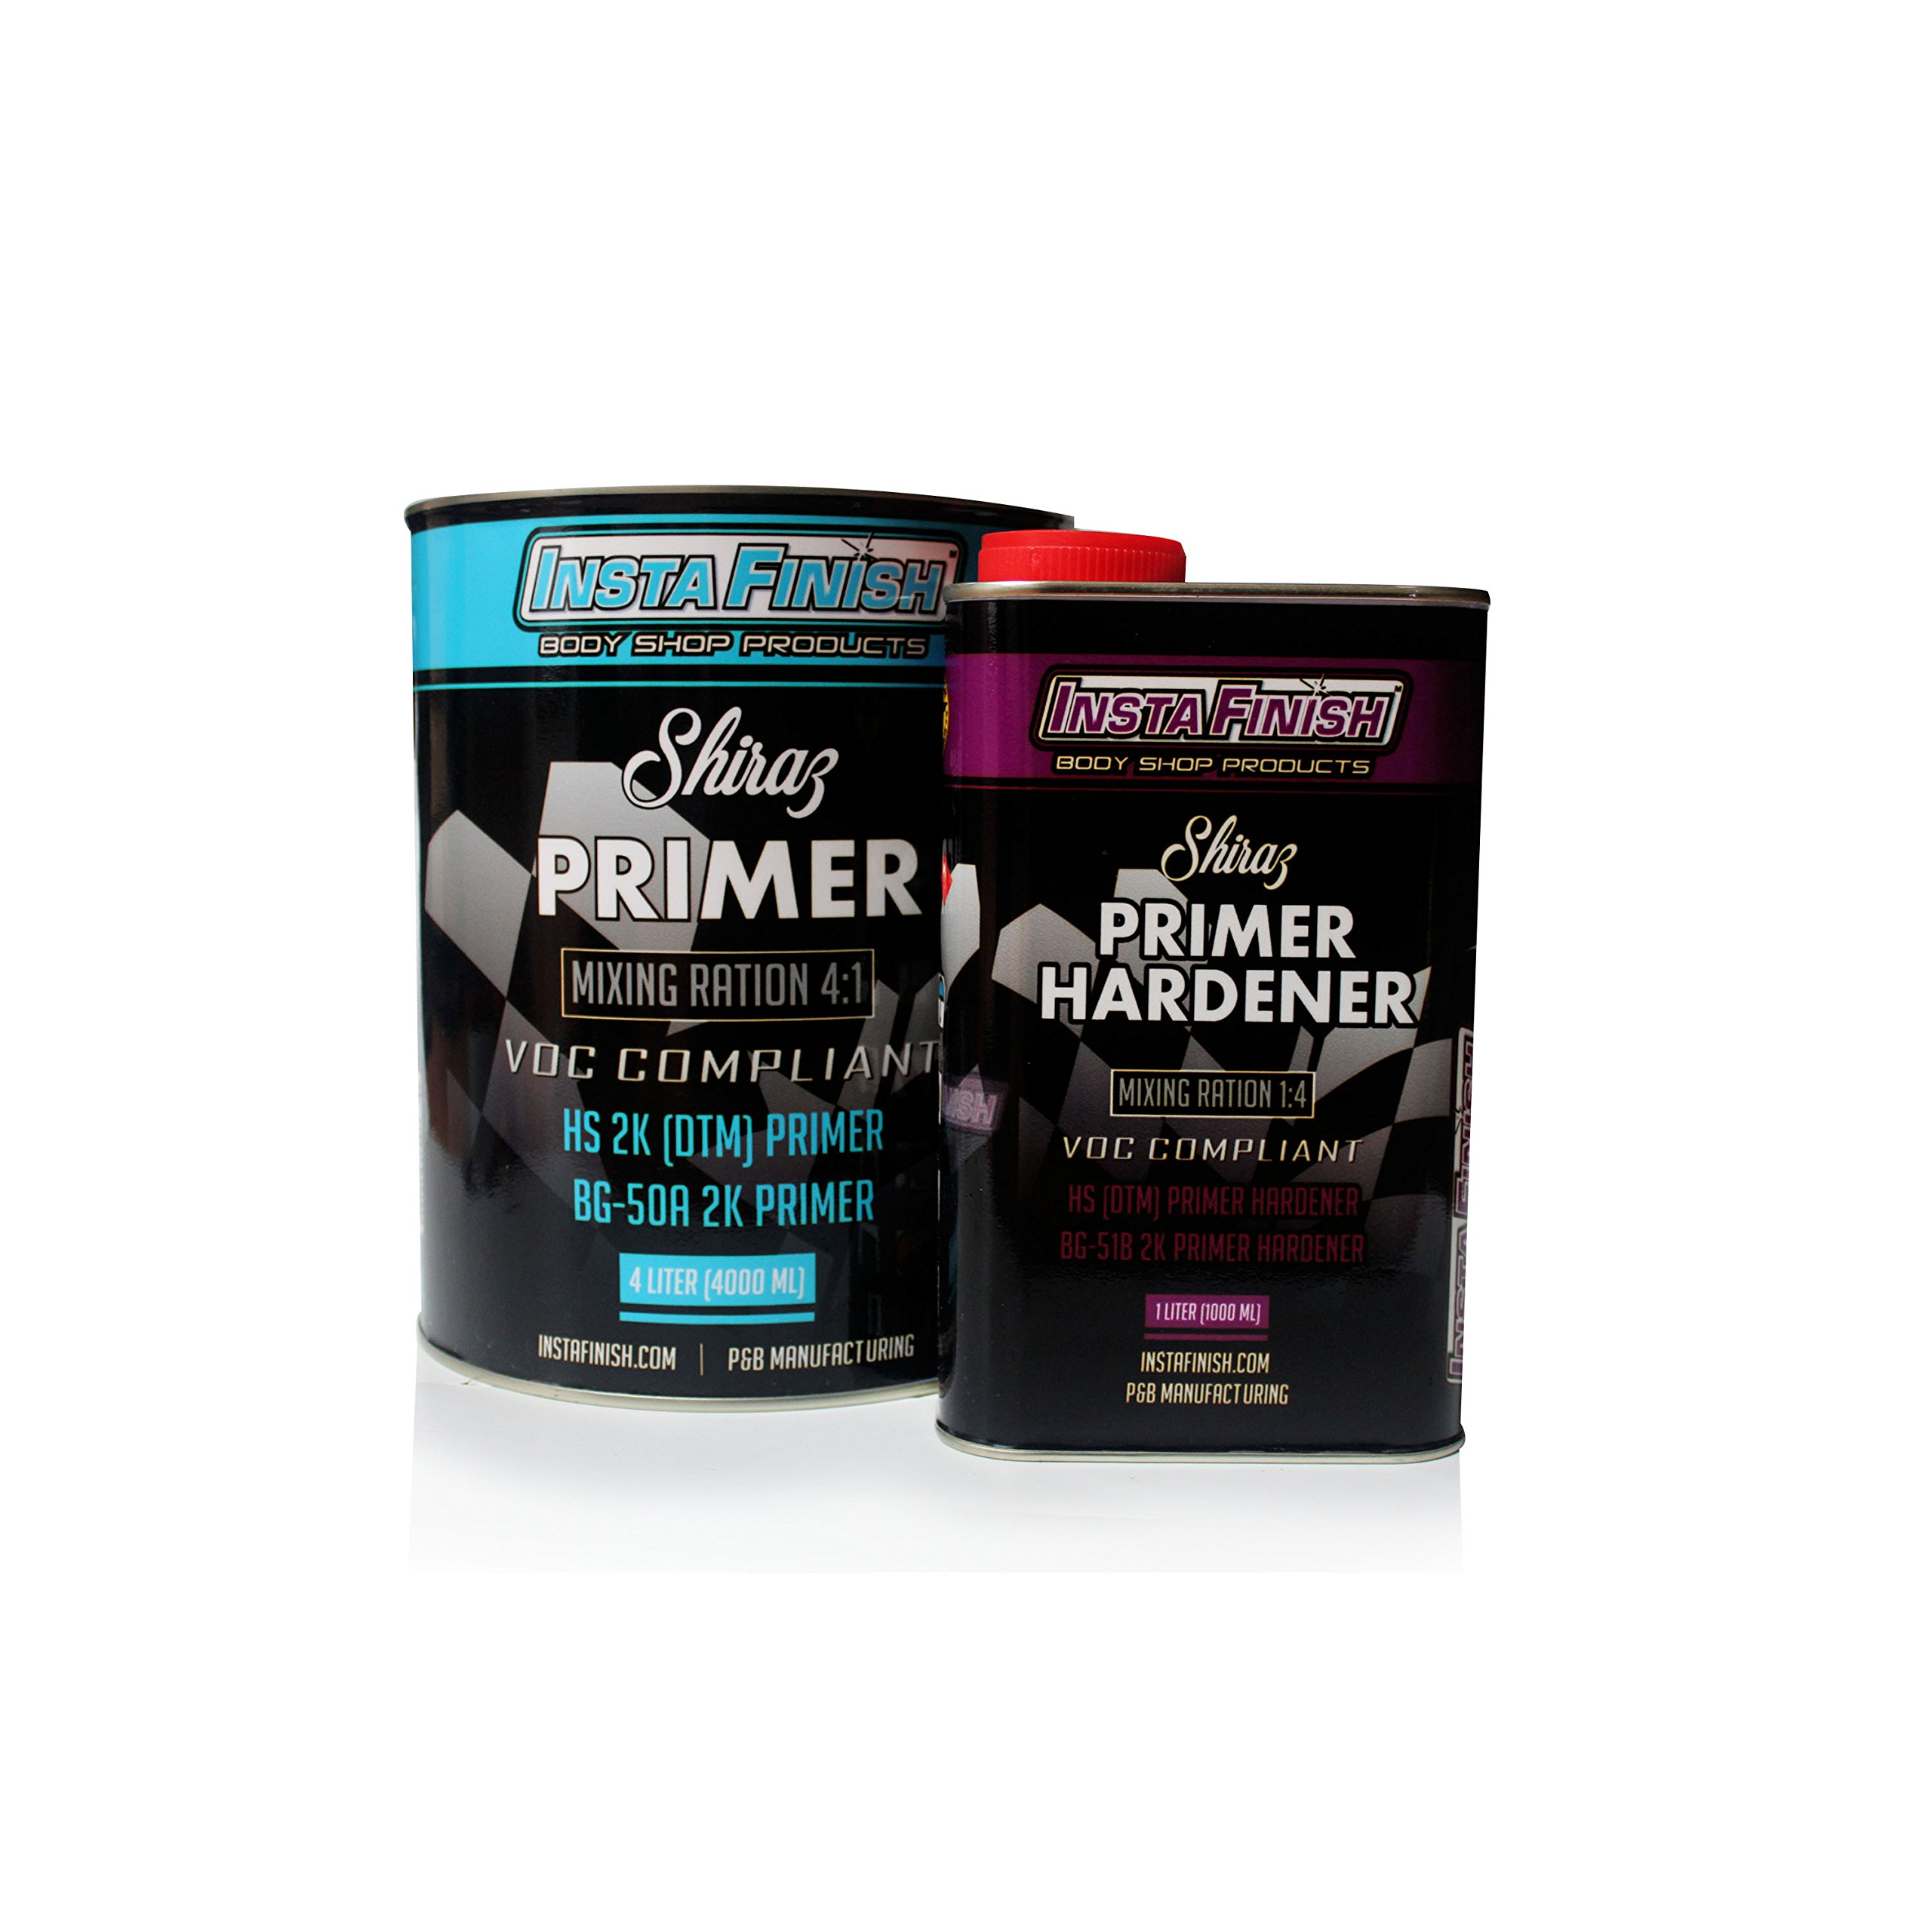 Insta Finish Shiraz Euro Classic DTM Primer (2.1 VOC) Light Gray 1 Gallon + Hardener included BG50A (5 LITERS TOTAL) + FREE PANEL SHOP 1200 POLISH